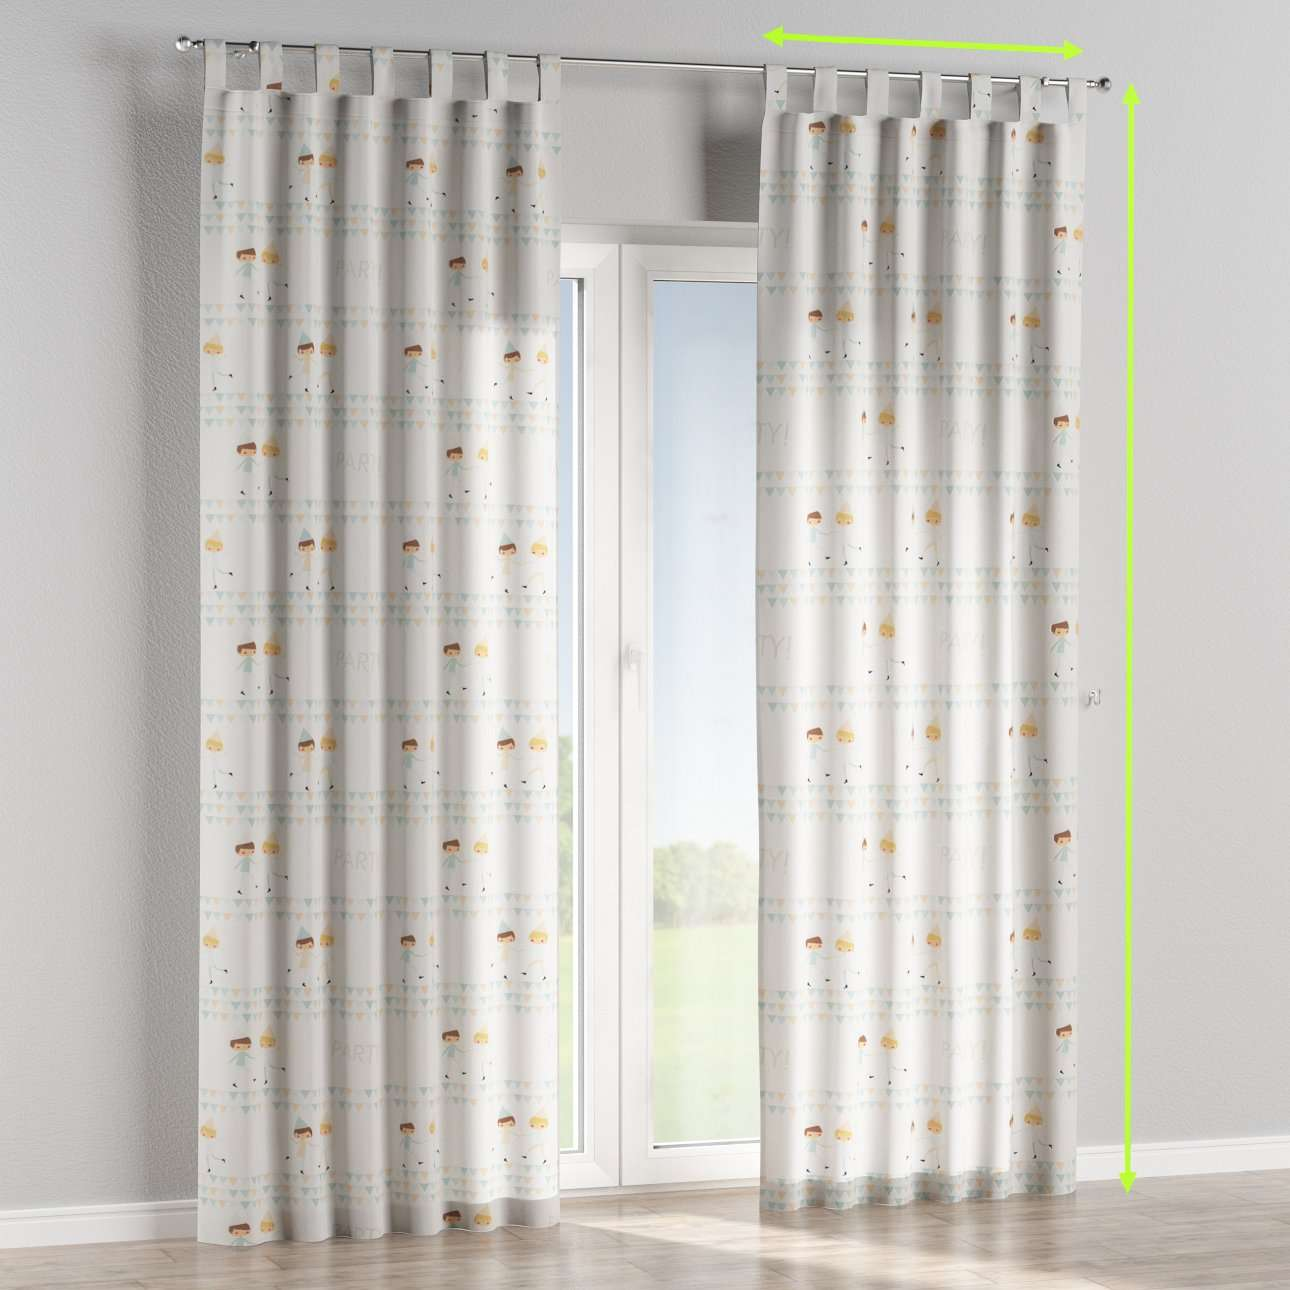 Tab top curtains in collection Apanona, fabric: 151-01